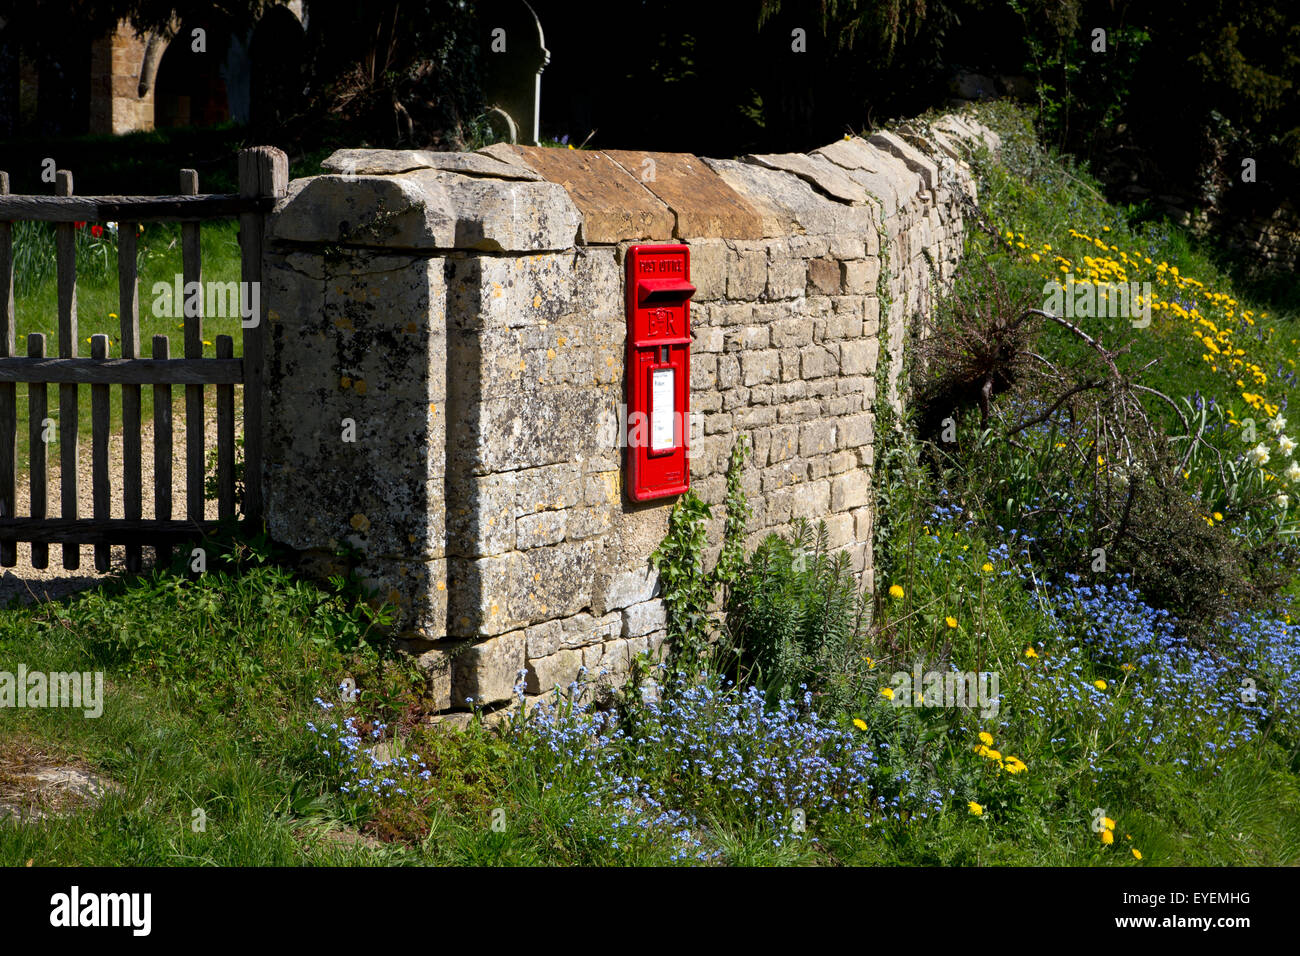 Wall postbox in Cotswold village of Swerford - Stock Image